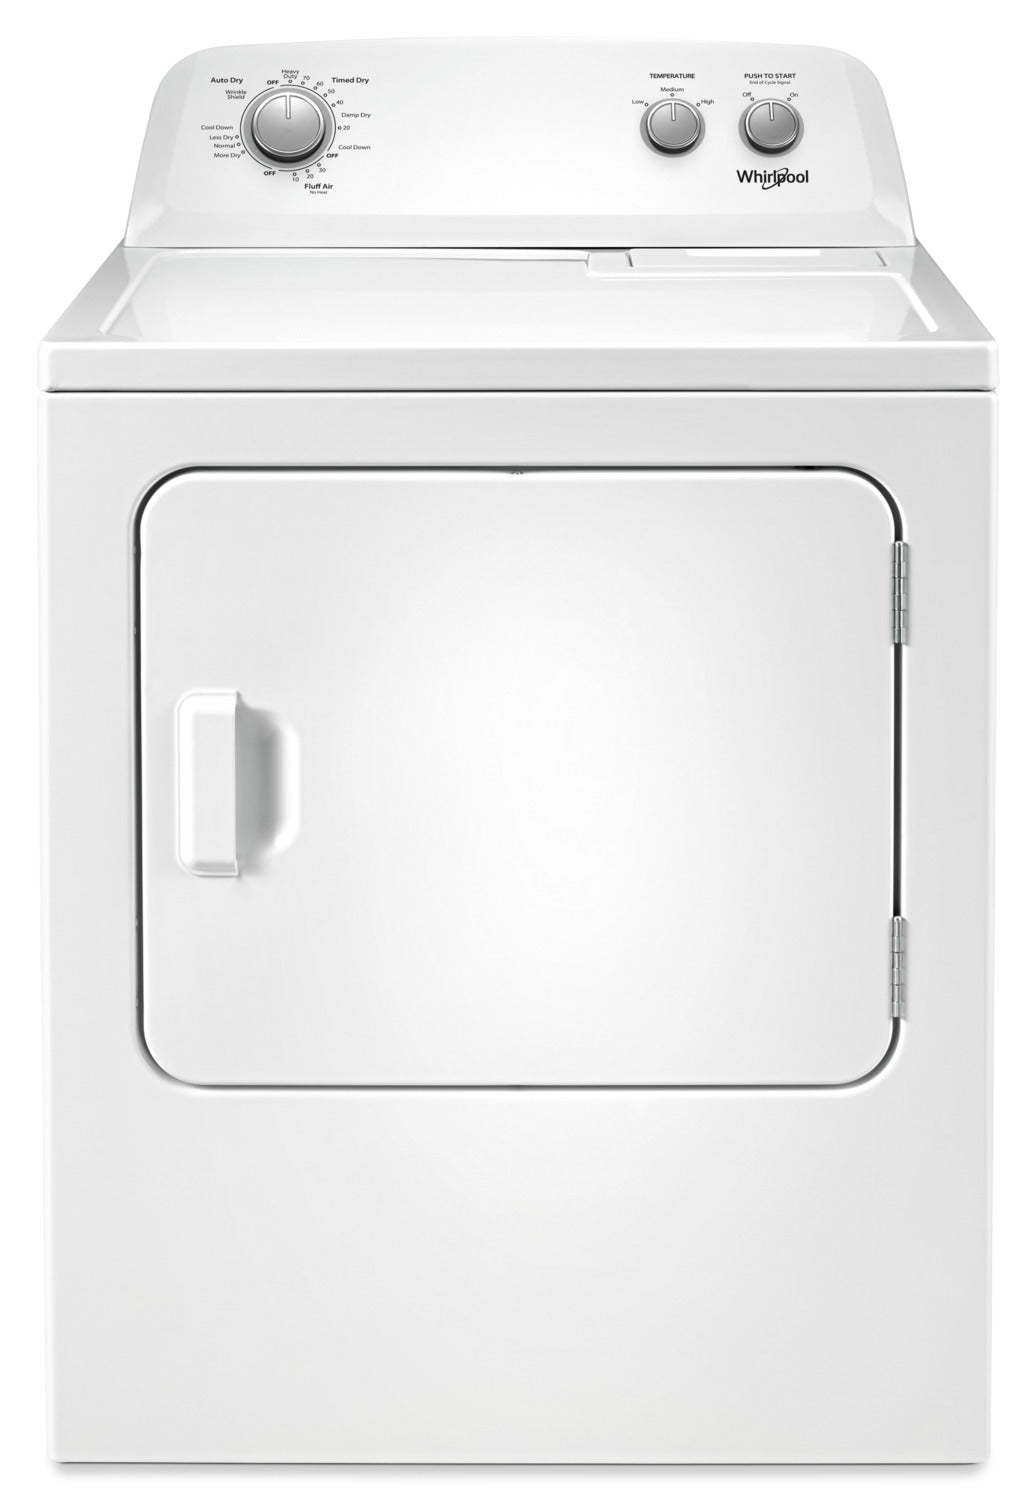 Whirlpool 4 4 Cu  Ft  I E C  Top-Load Washer and 7 0 Cu  Ft  Dryer – White